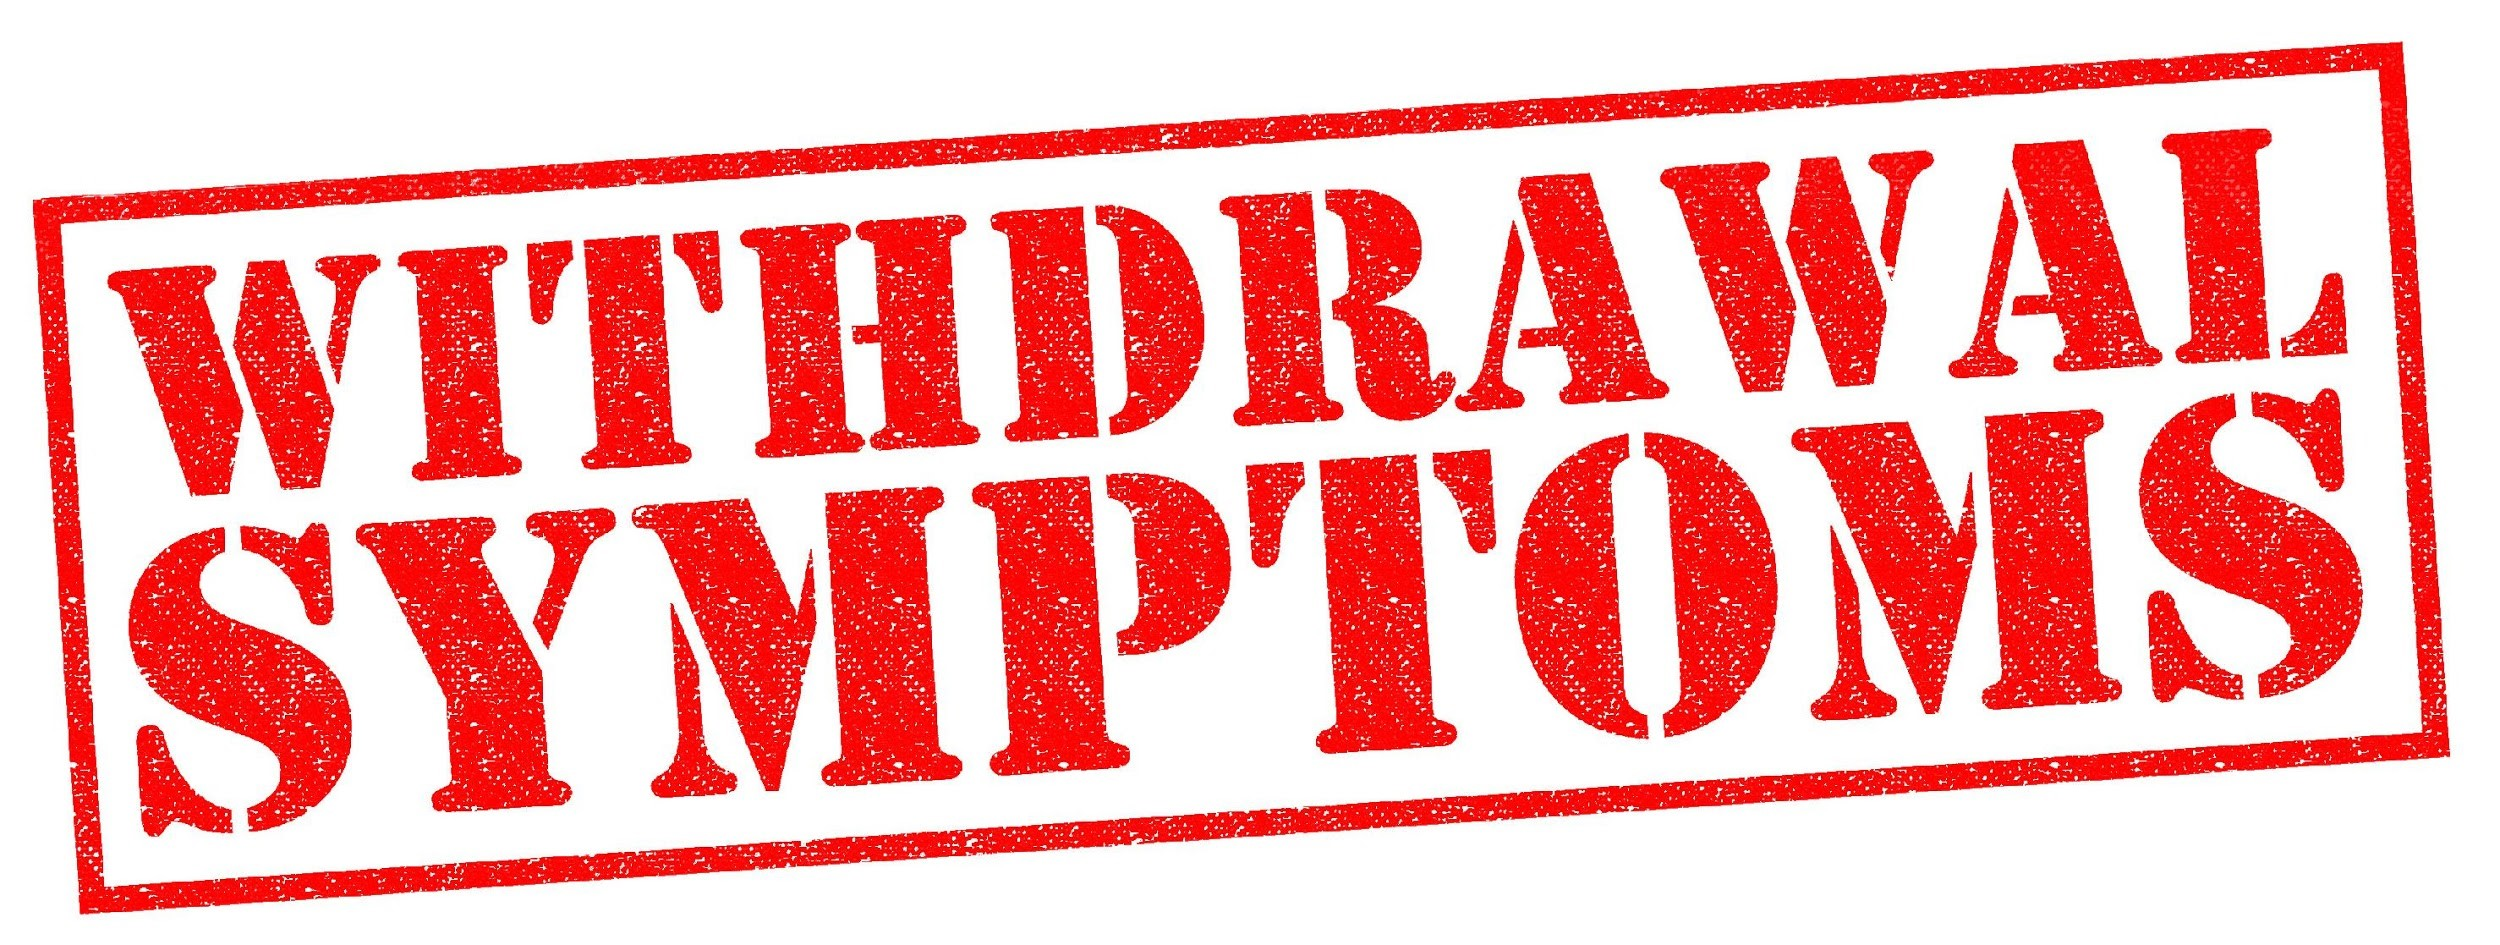 Clonazepam Withdrawal Symptoms List and How Long Do They Last